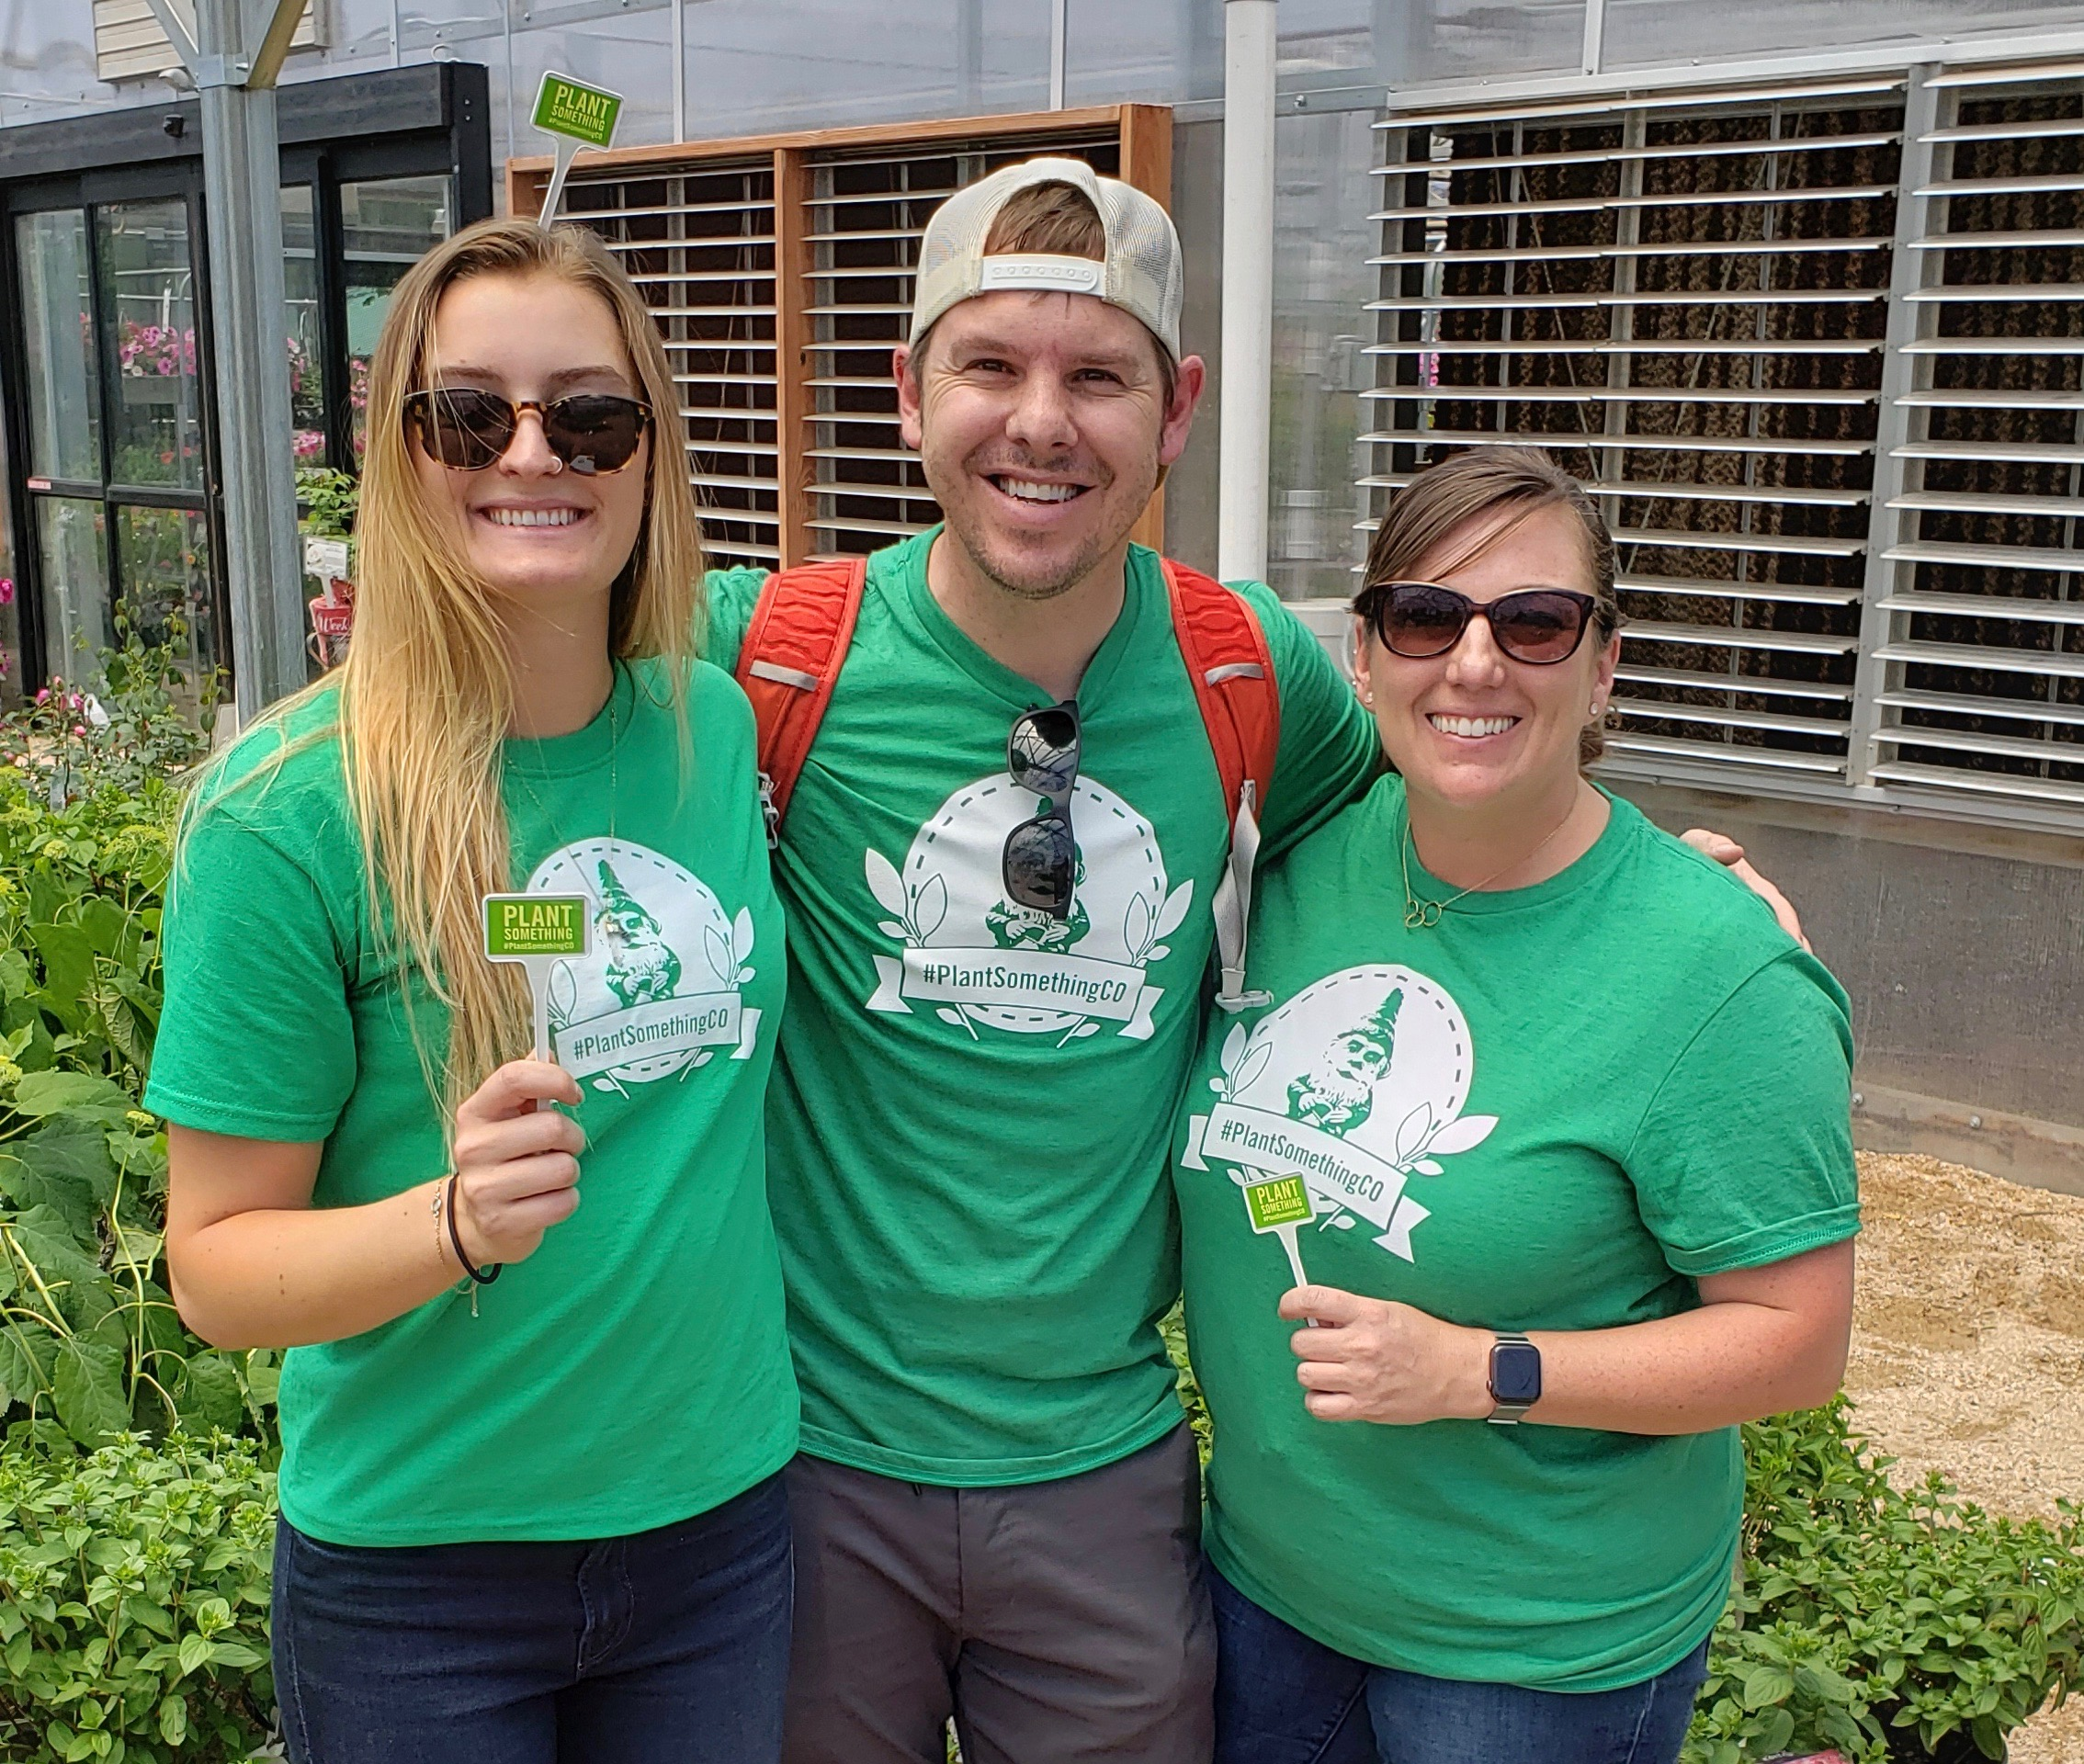 Katie, Ben, and Allison hold up their official #PlantSomethingCO stakes after the live event